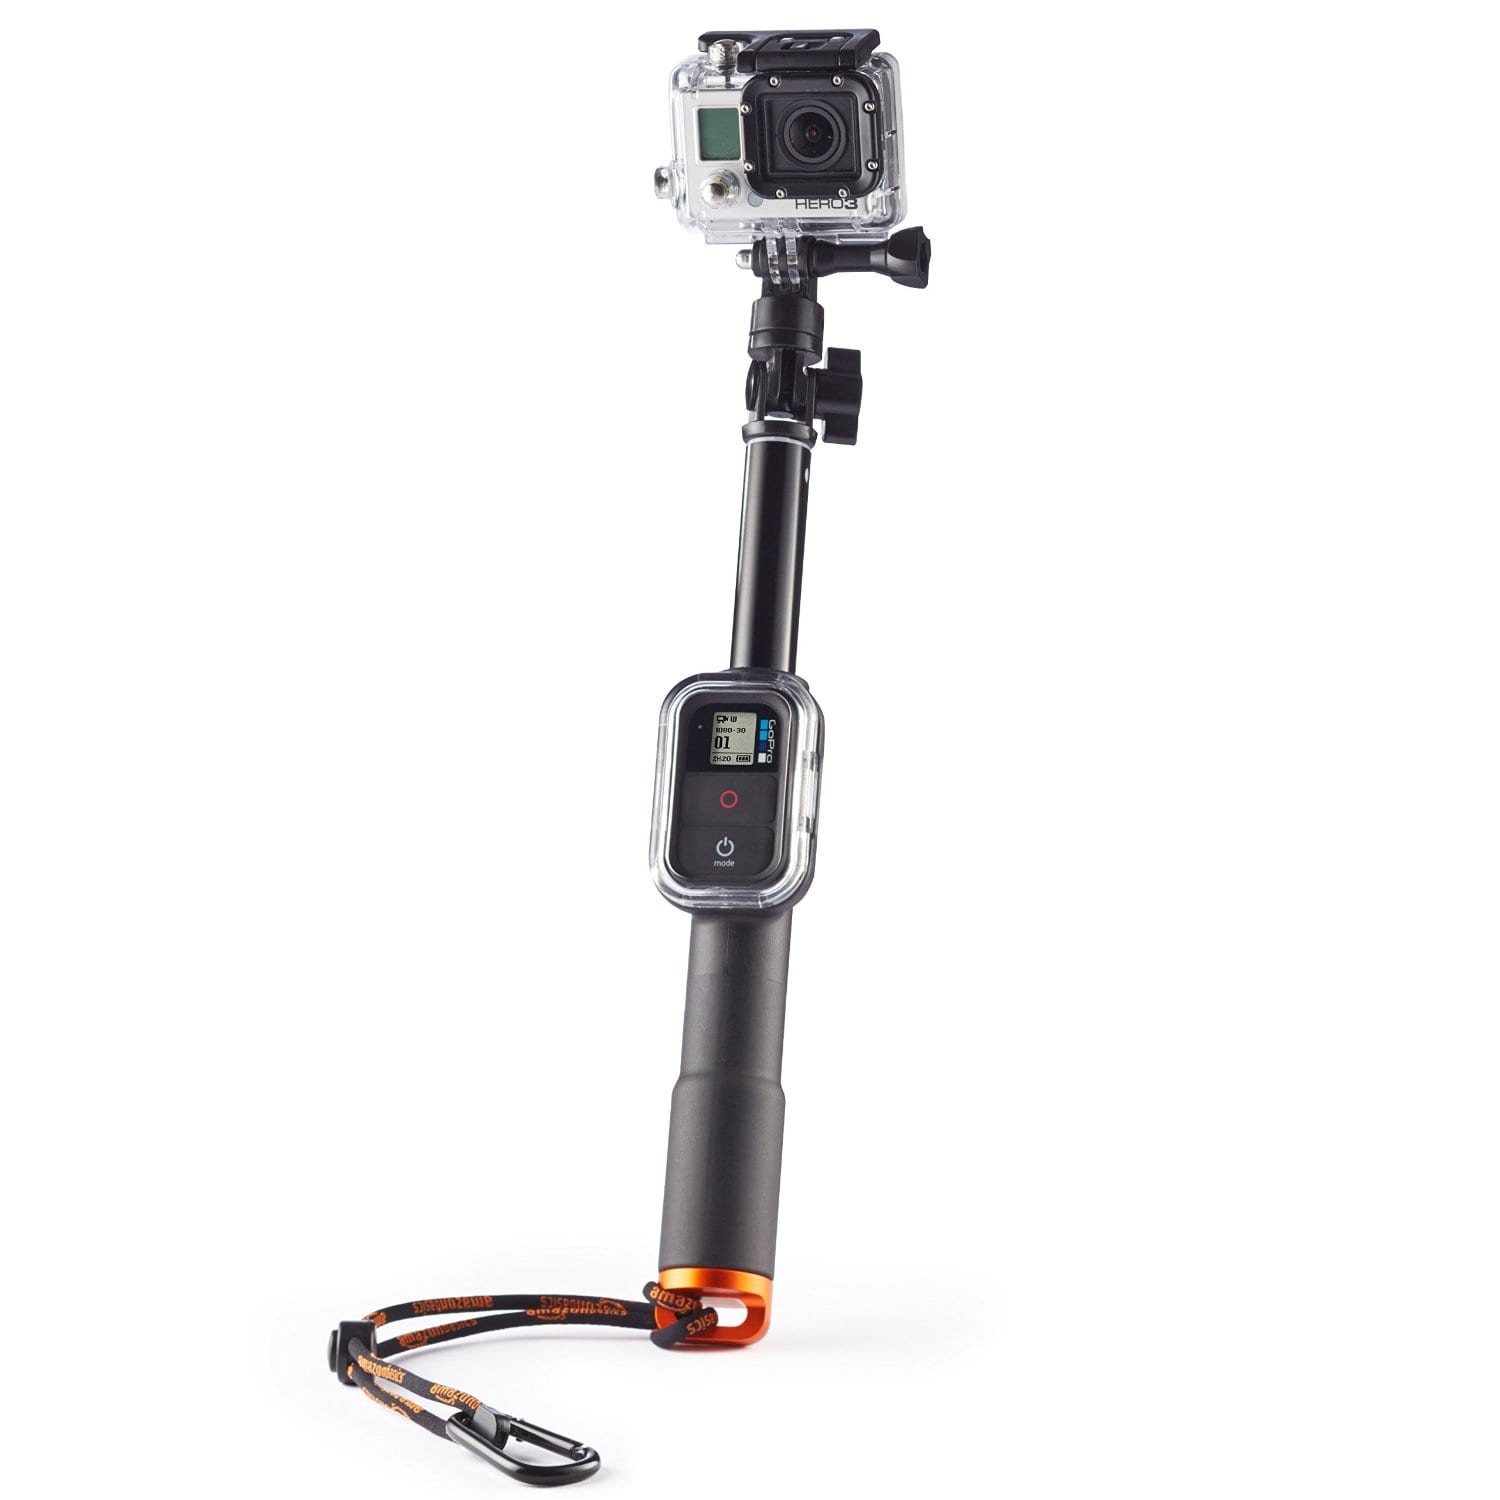 the best gopro selfie stick with remote control review 2017 top 10 review of. Black Bedroom Furniture Sets. Home Design Ideas